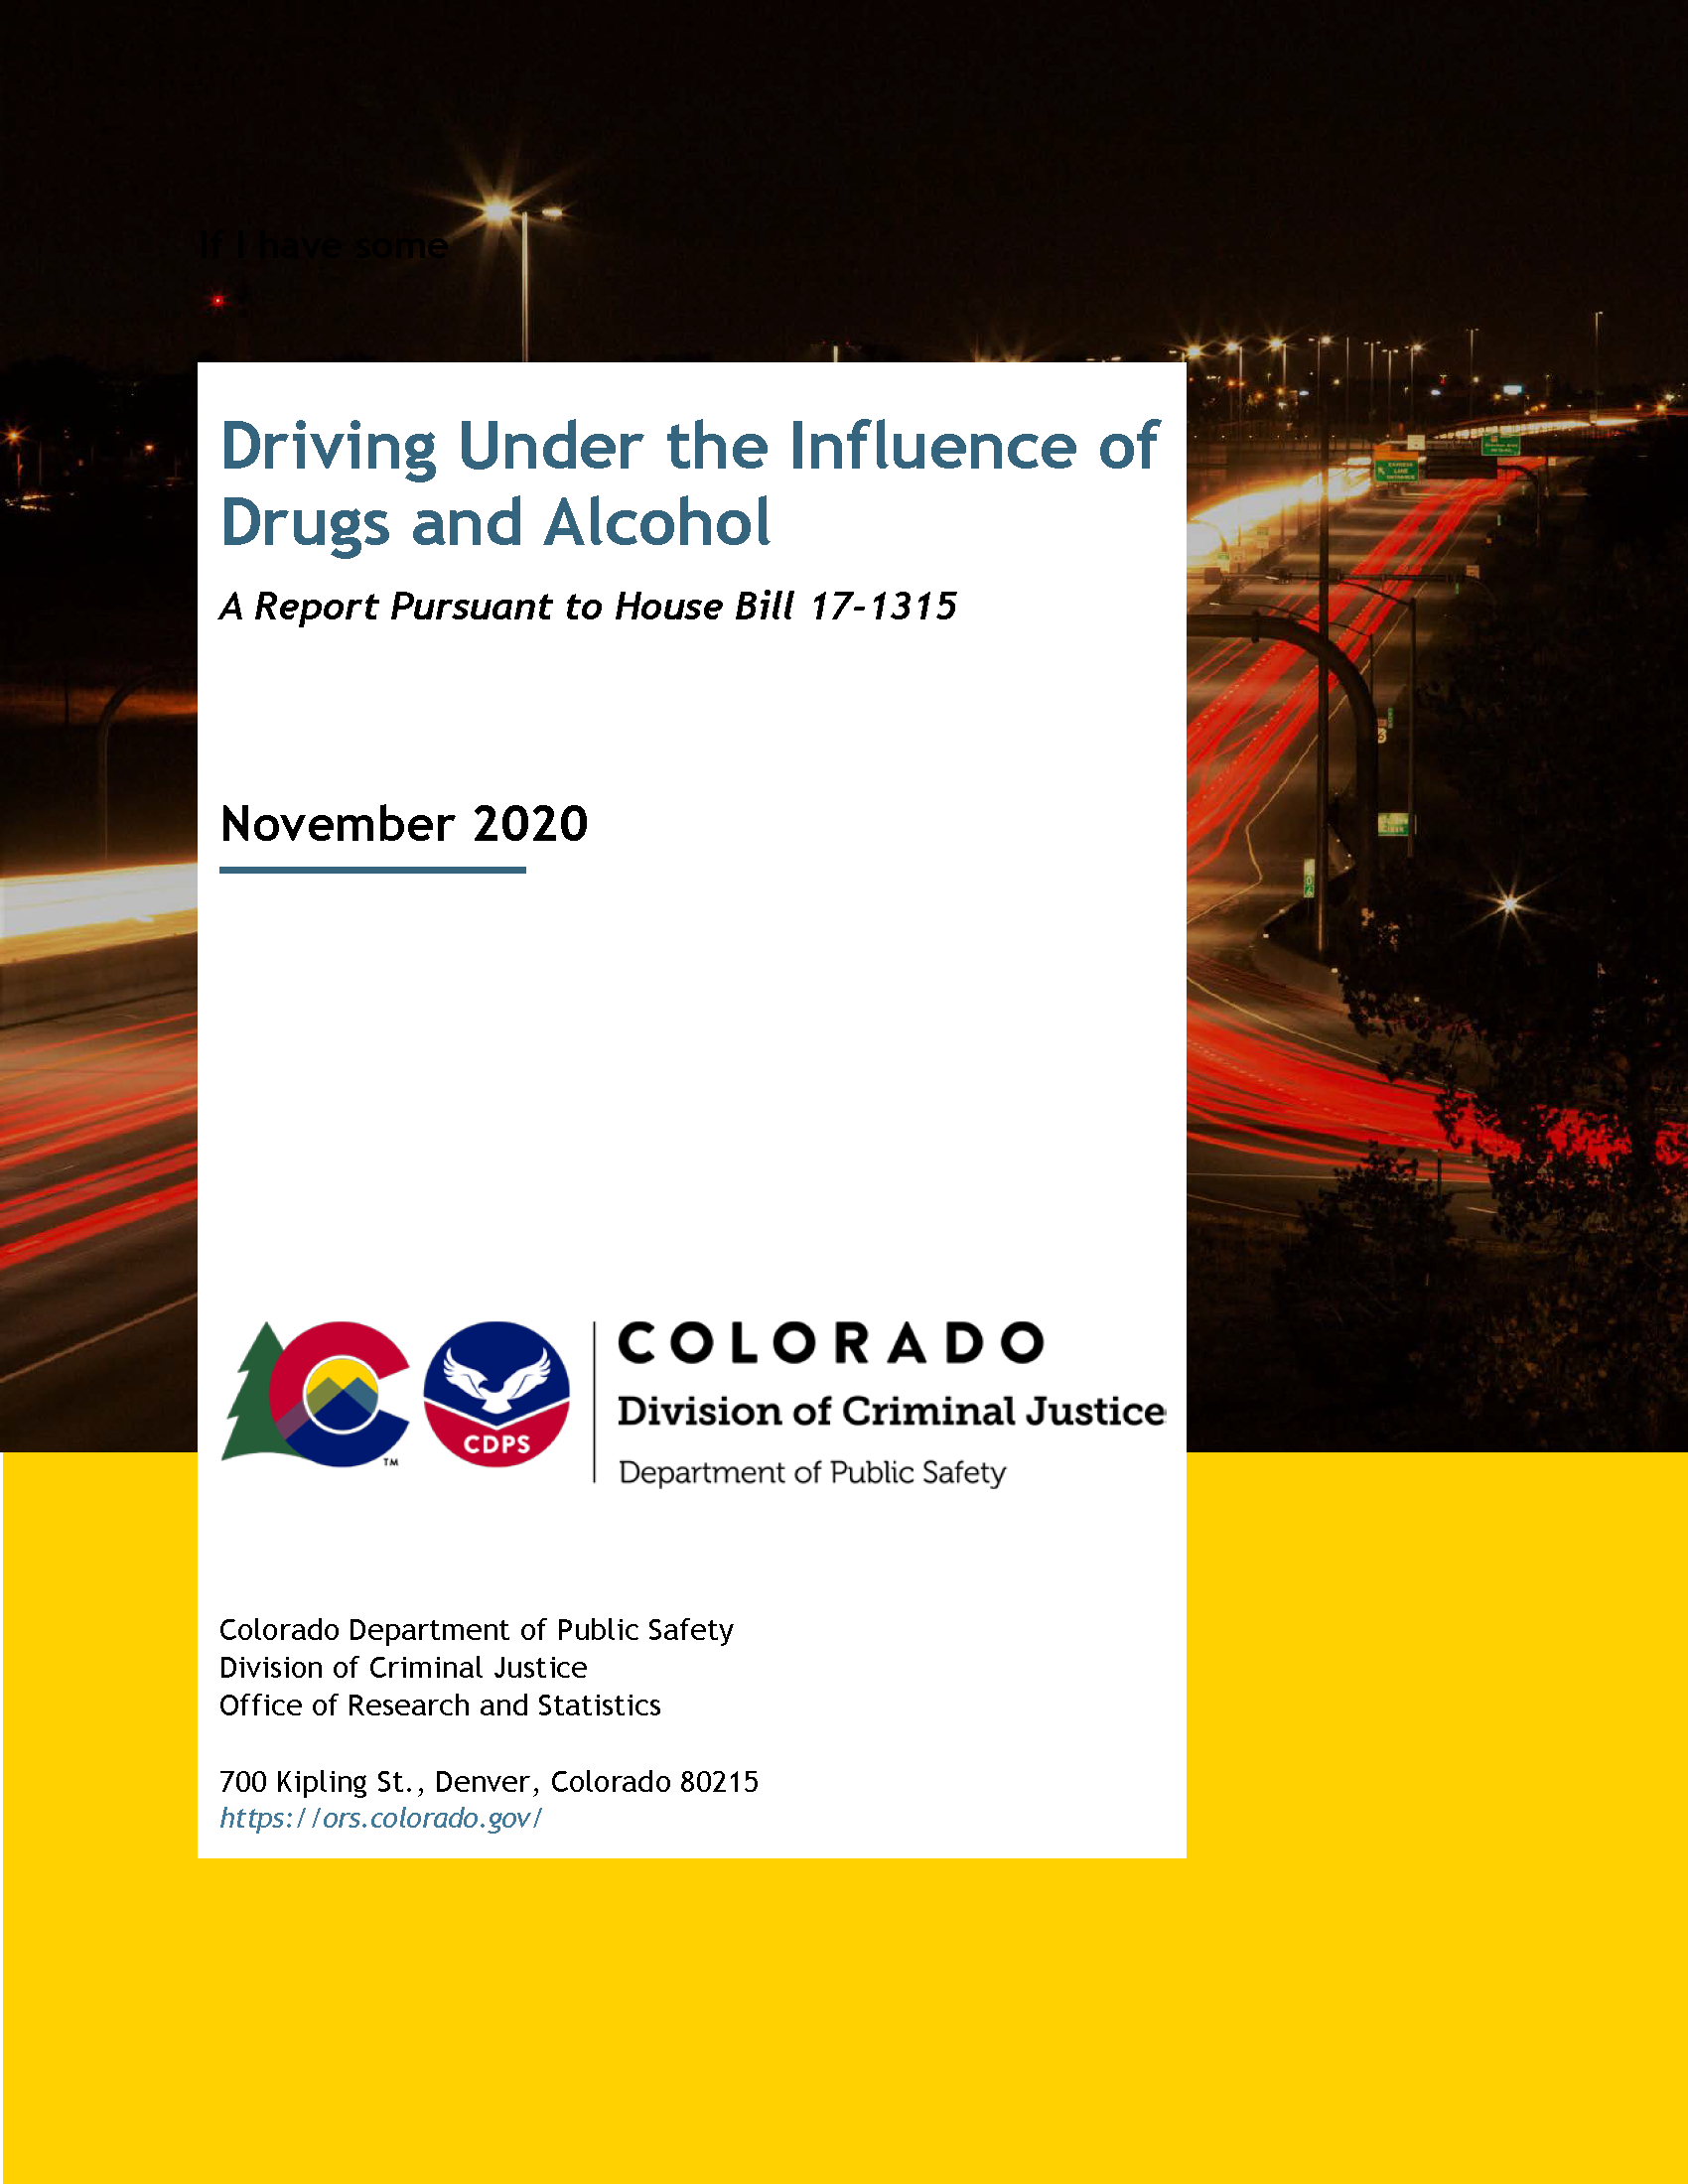 Driving Under the Influence of Drugs and Alcohol (November 2020)